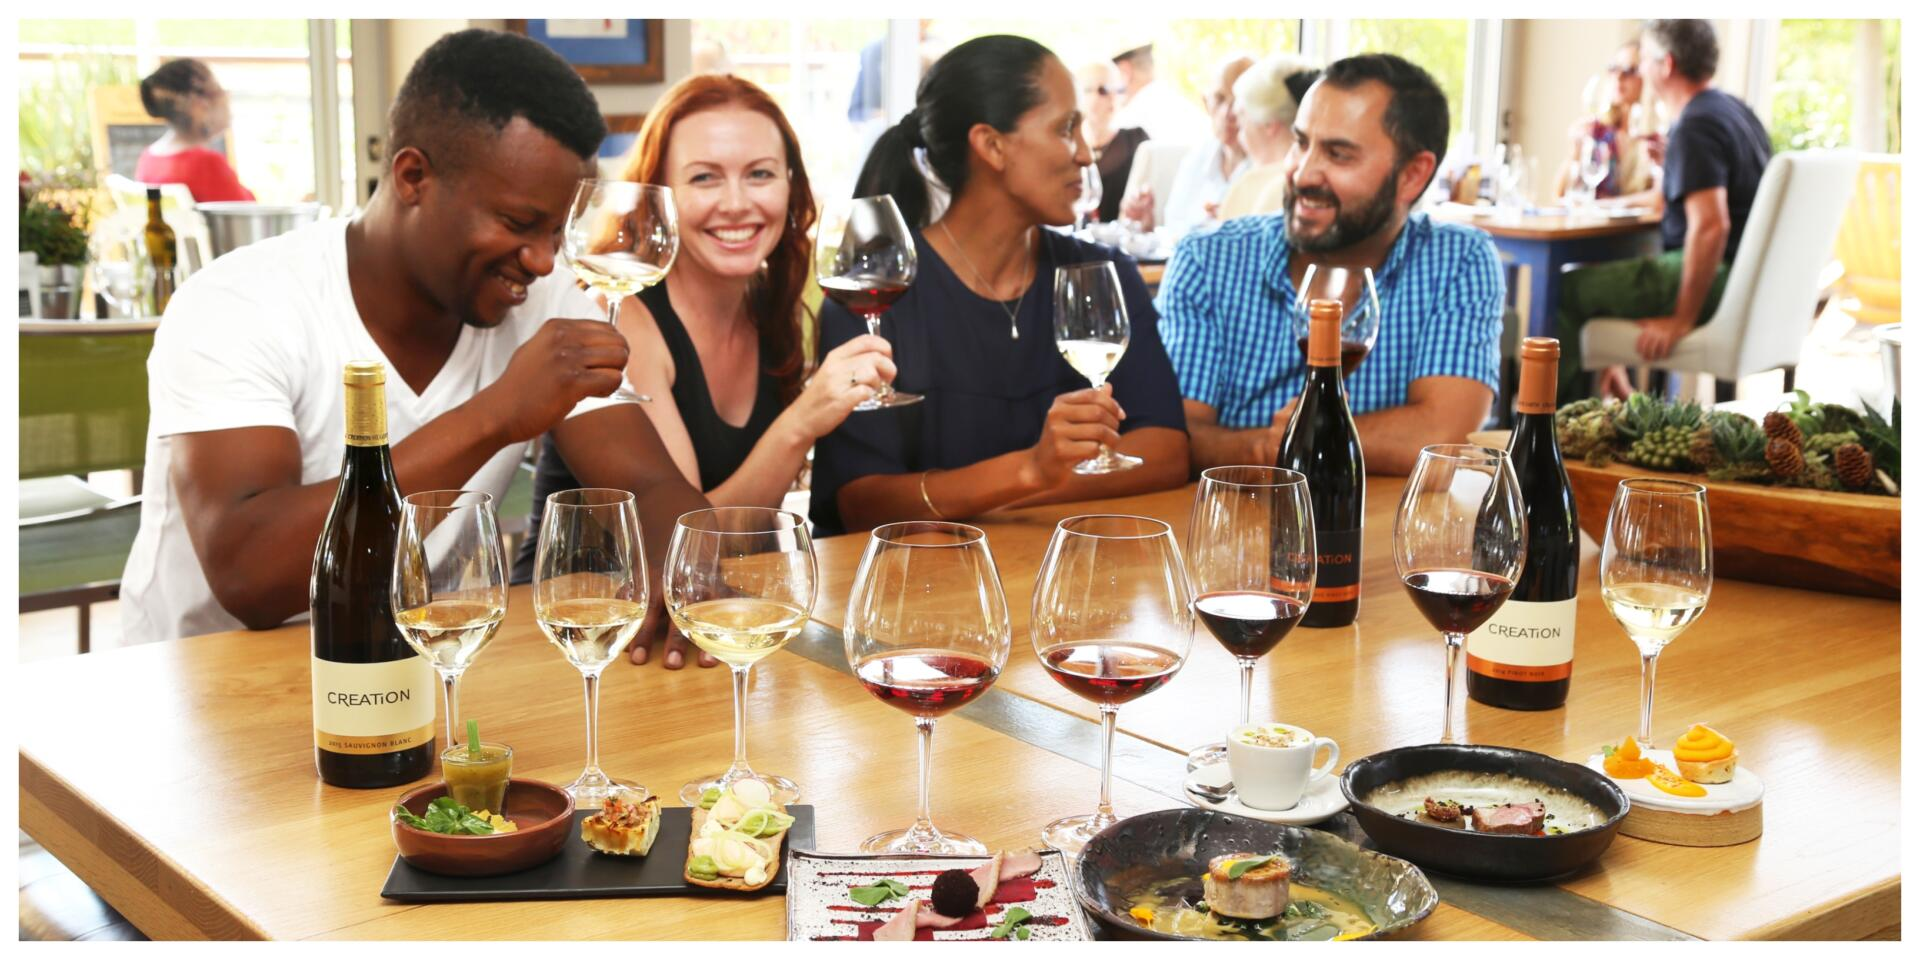 Creation Wines Among The 50 Top Wineries In The World